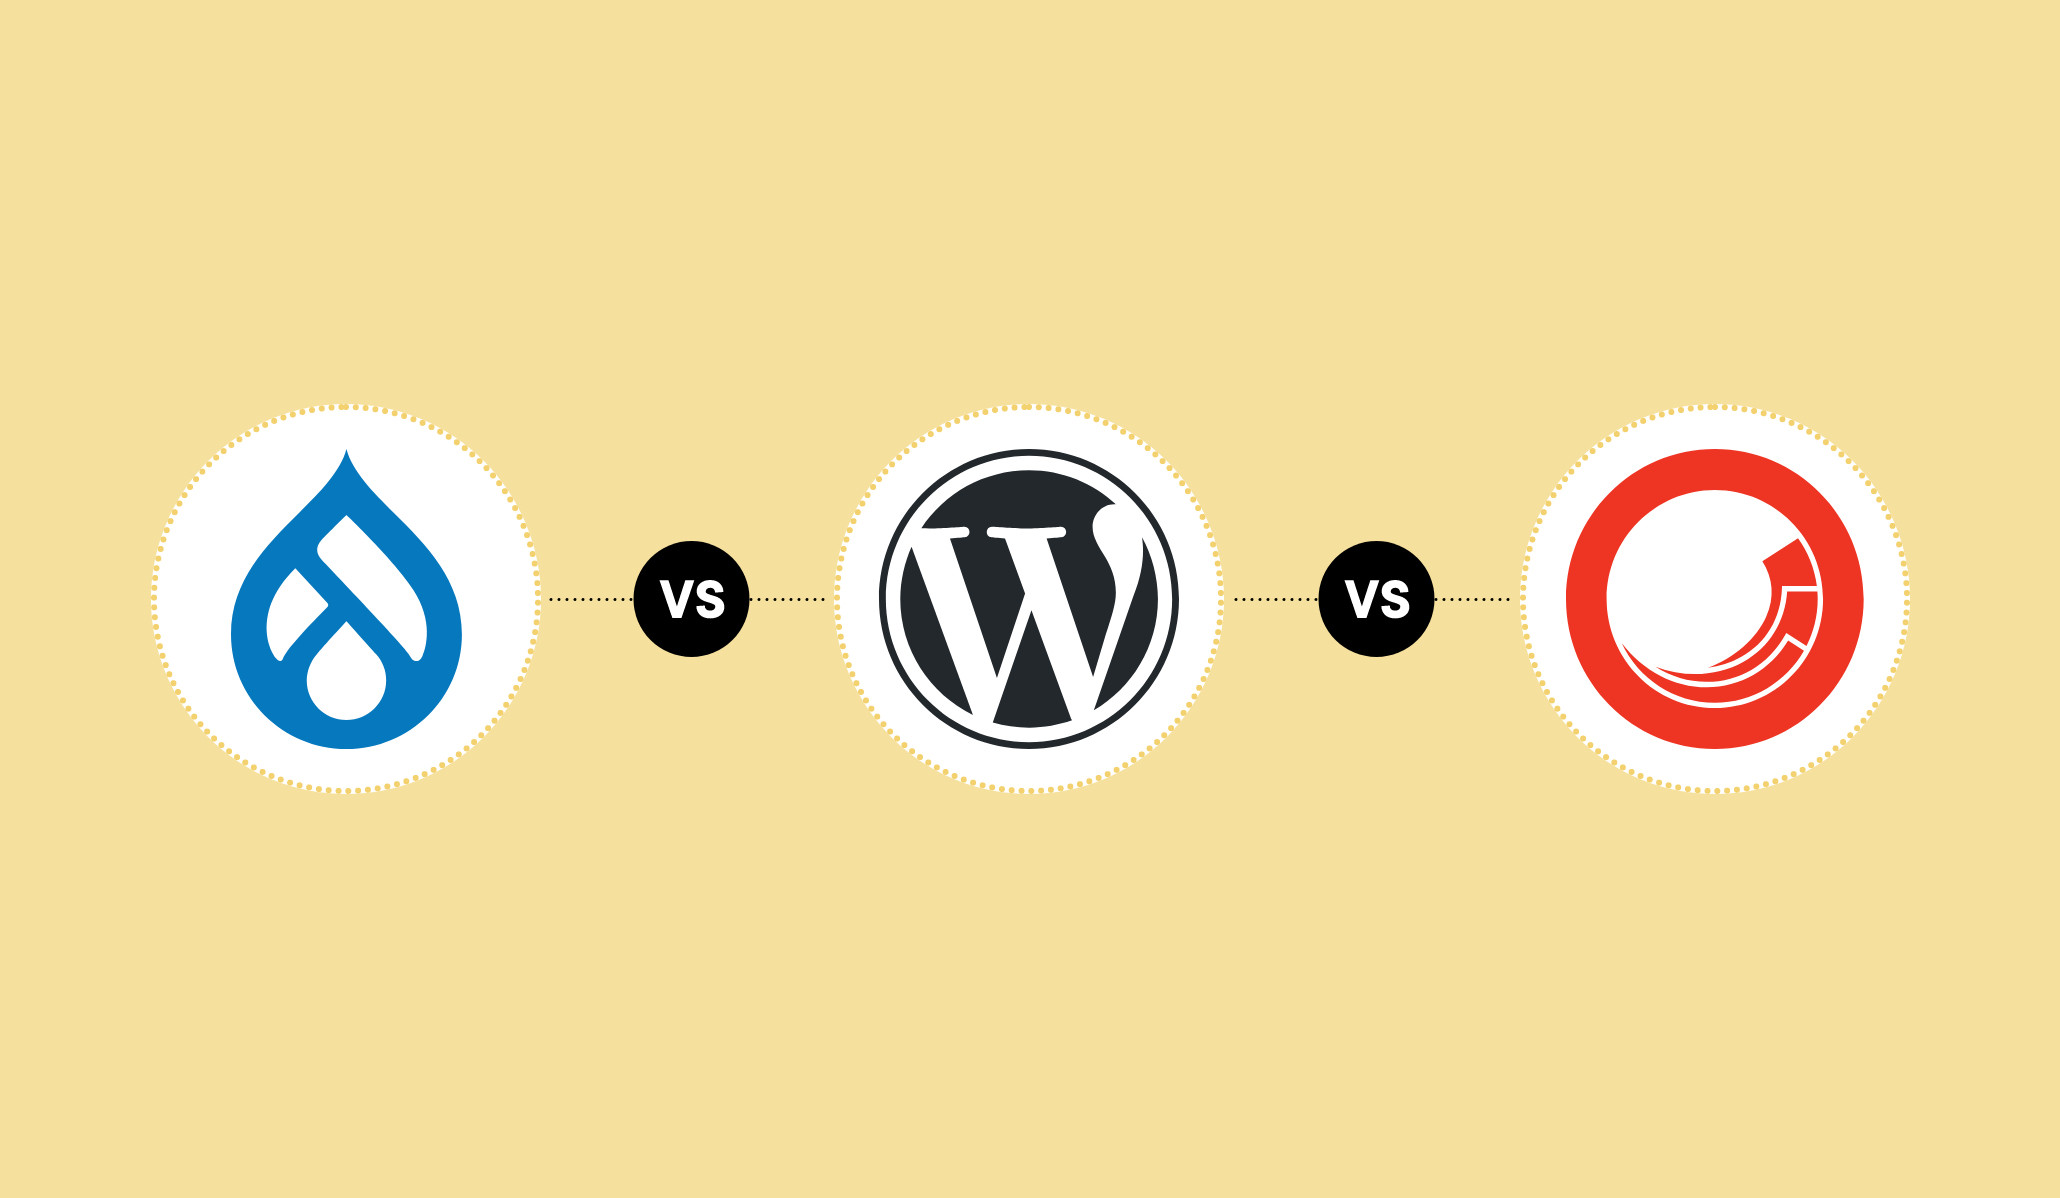 Drupal vs WordPress vs Sitecore Which CMS is Best for Your Business?